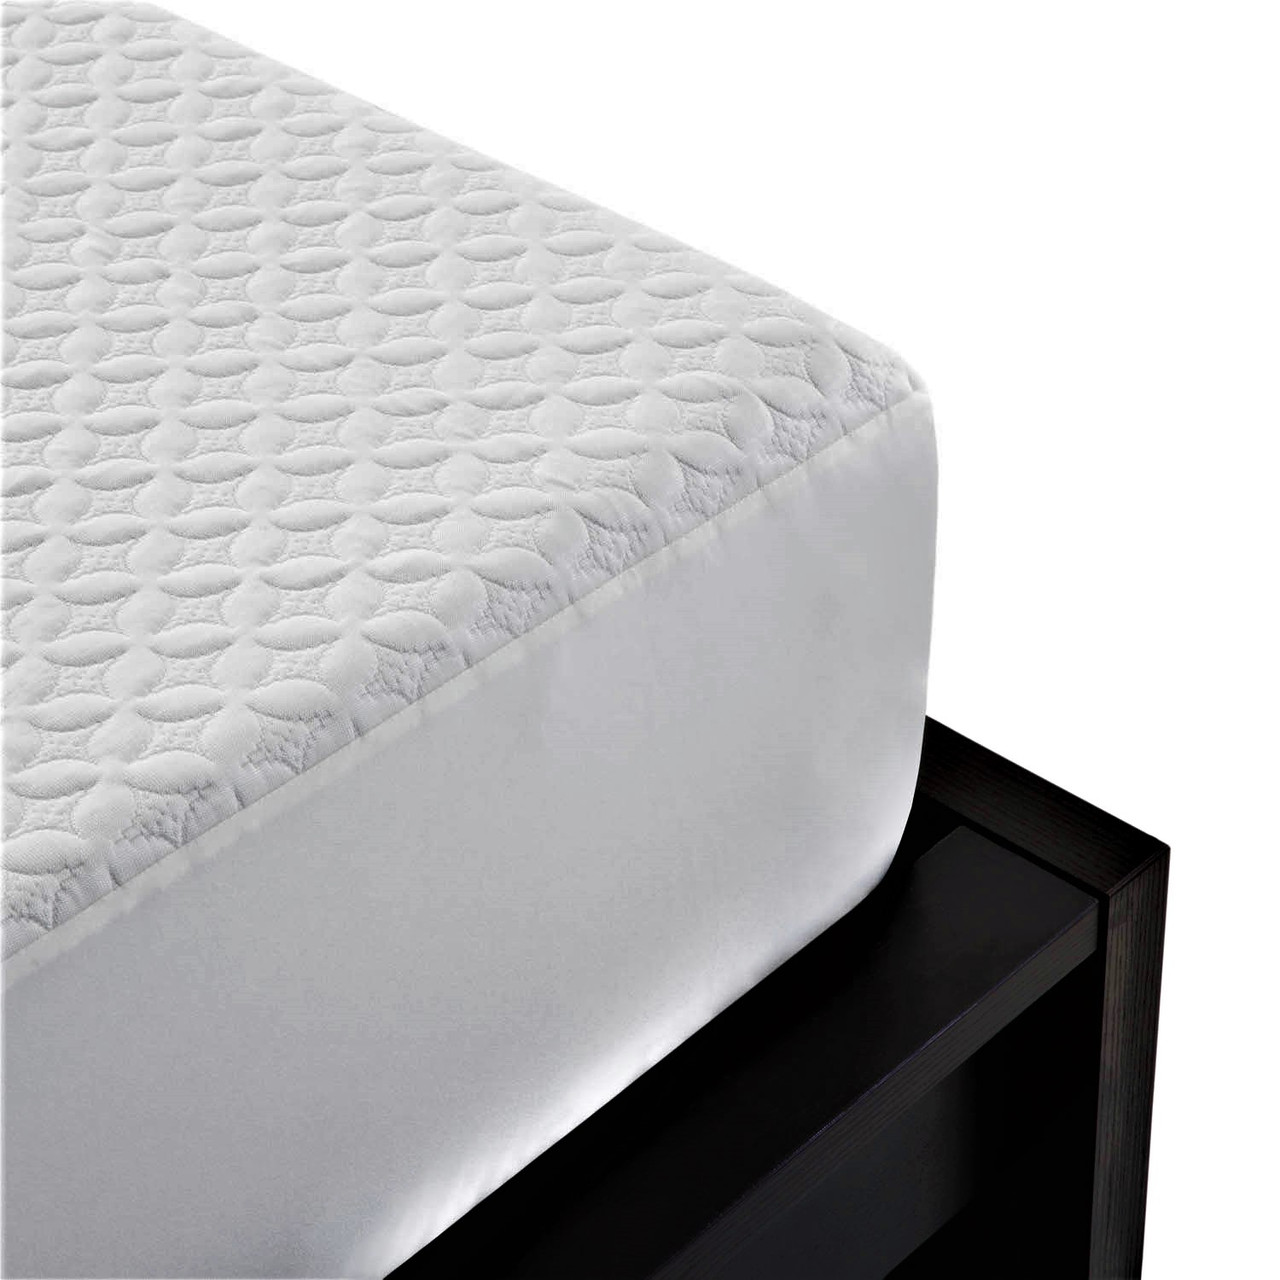 Five Sided Icetech Queen Mattress Protector On Sale At Larrabee S Furniture Design Serving Littleton Co